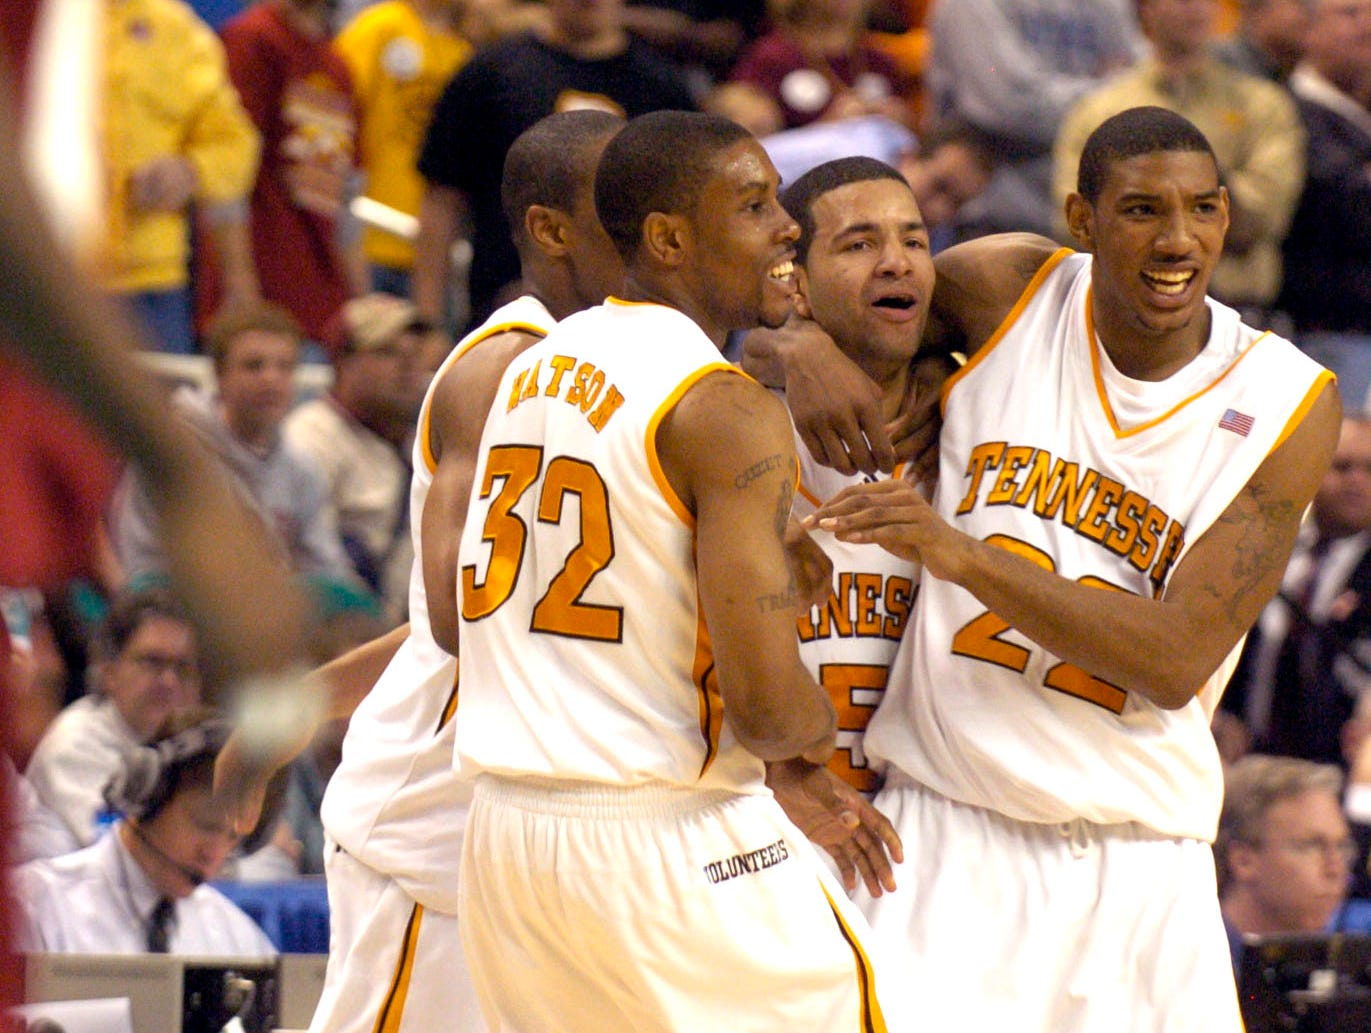 Tennessee teammates C.J. Watson, Stanley Asumnu, and Andre Patterson celebrate with Chris Lofton after he hit a game-winning shot against Winthrop during a first round  2006 NCAA tournament game Thursday at the Greensboro Coliseum in Greensboro, N.C. The Vols won the game 63-61.